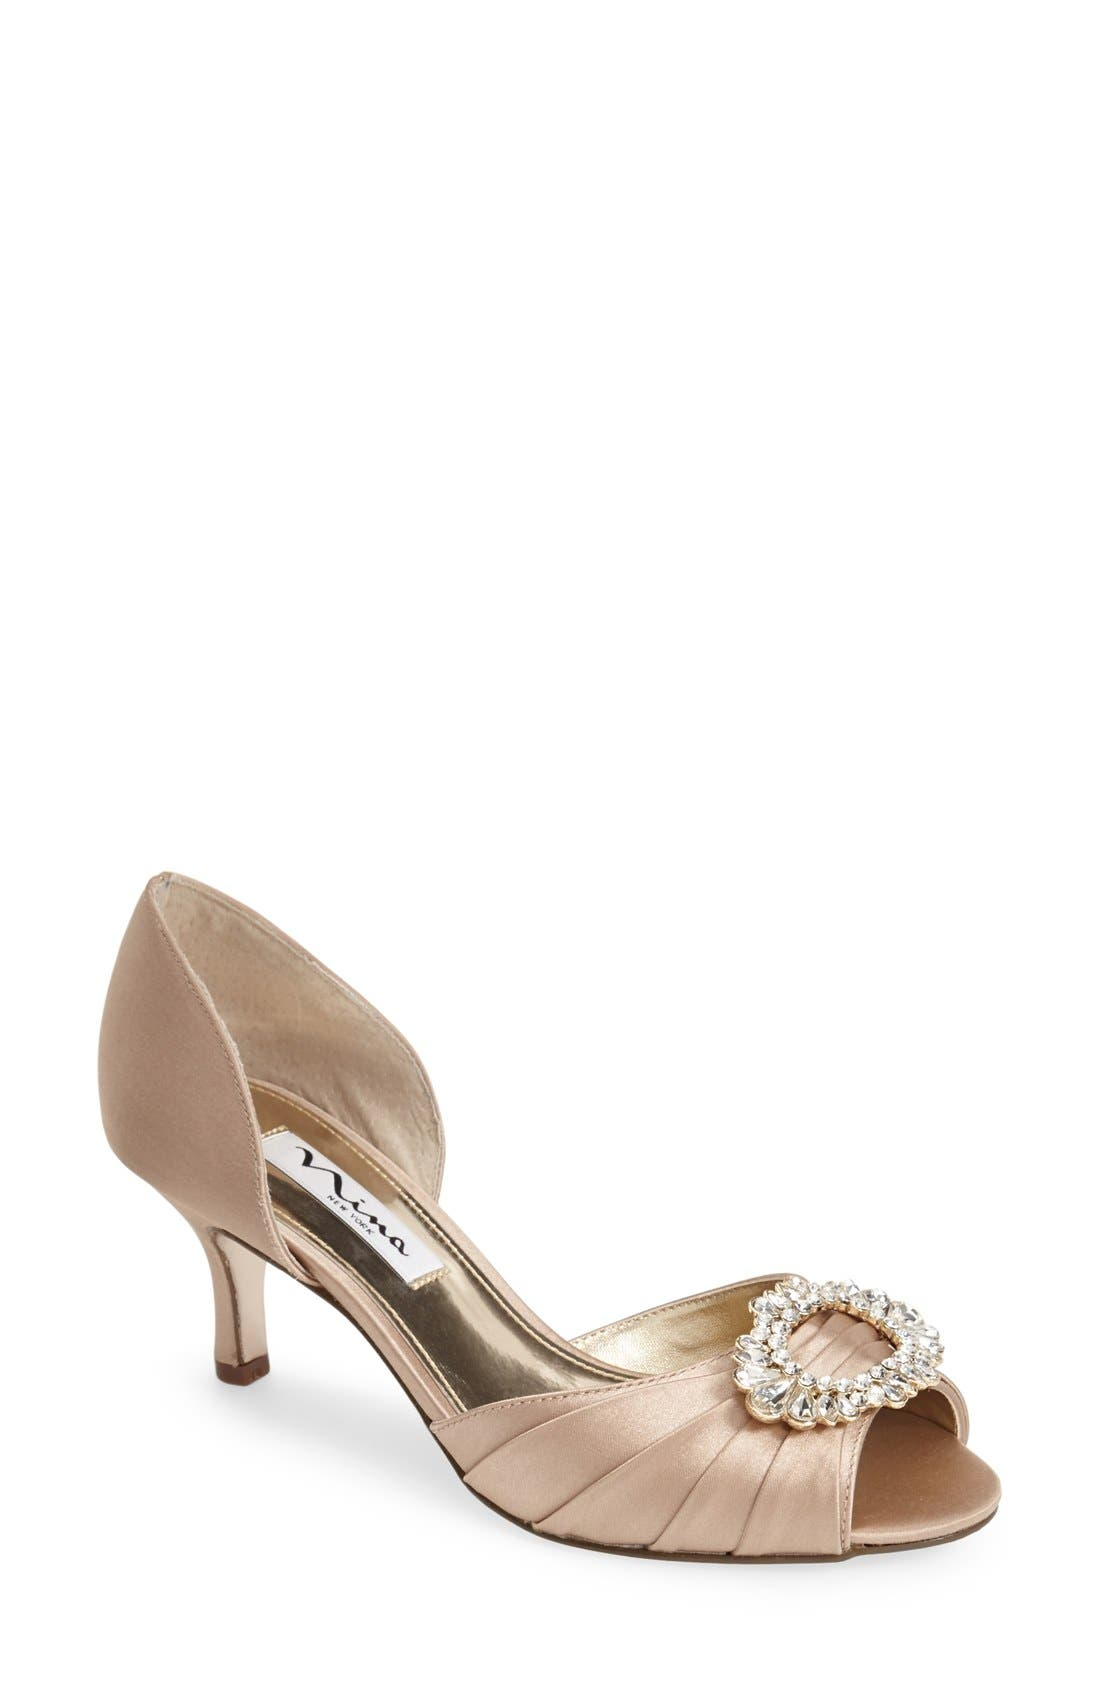 'Crystah' Embellished Satin Pump,                         Main,                         color, 291